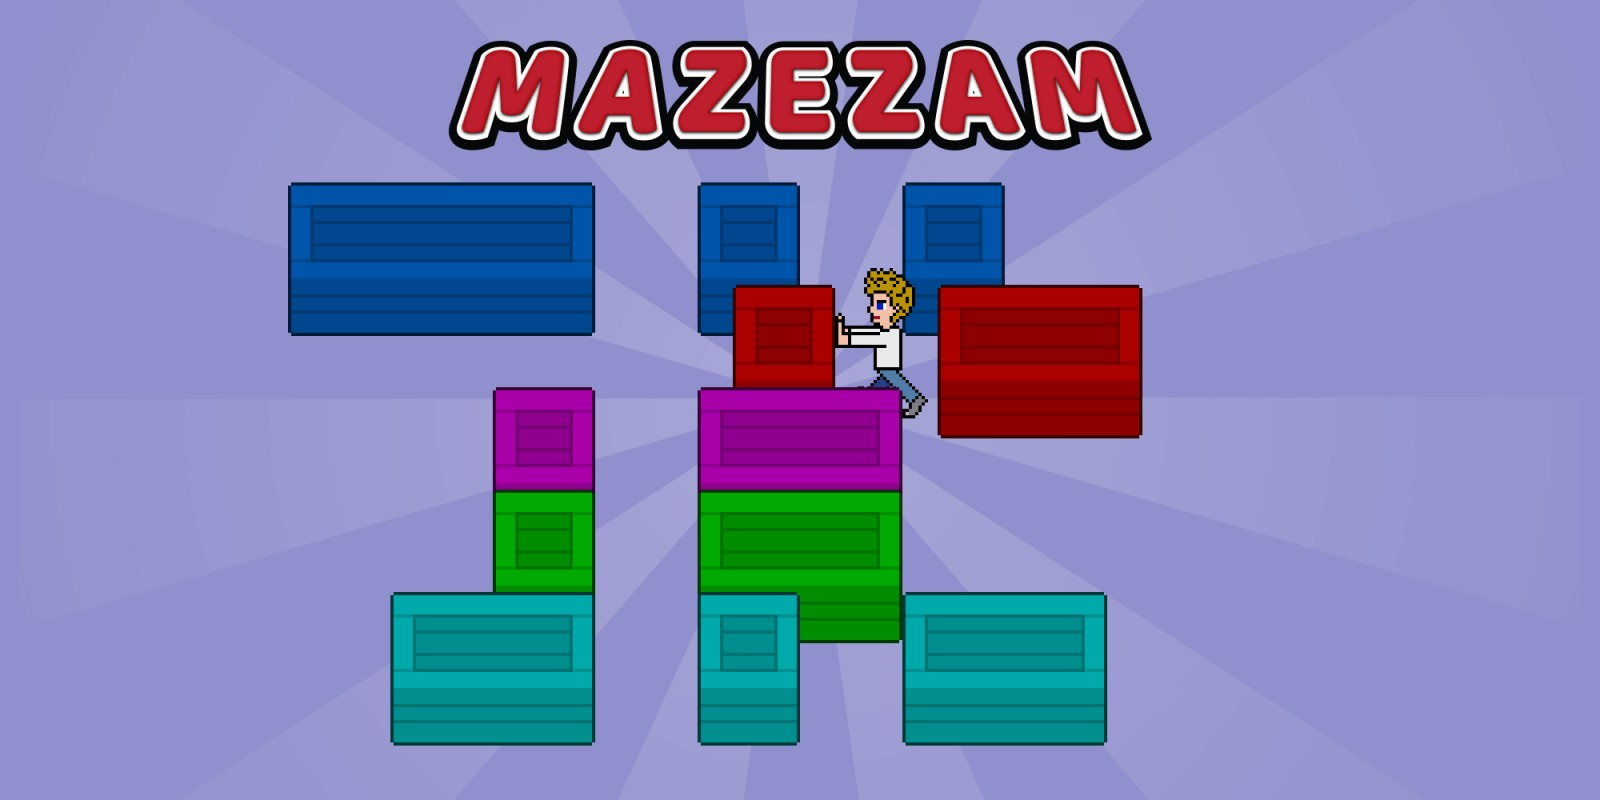 MazezaM - Puzzle Game